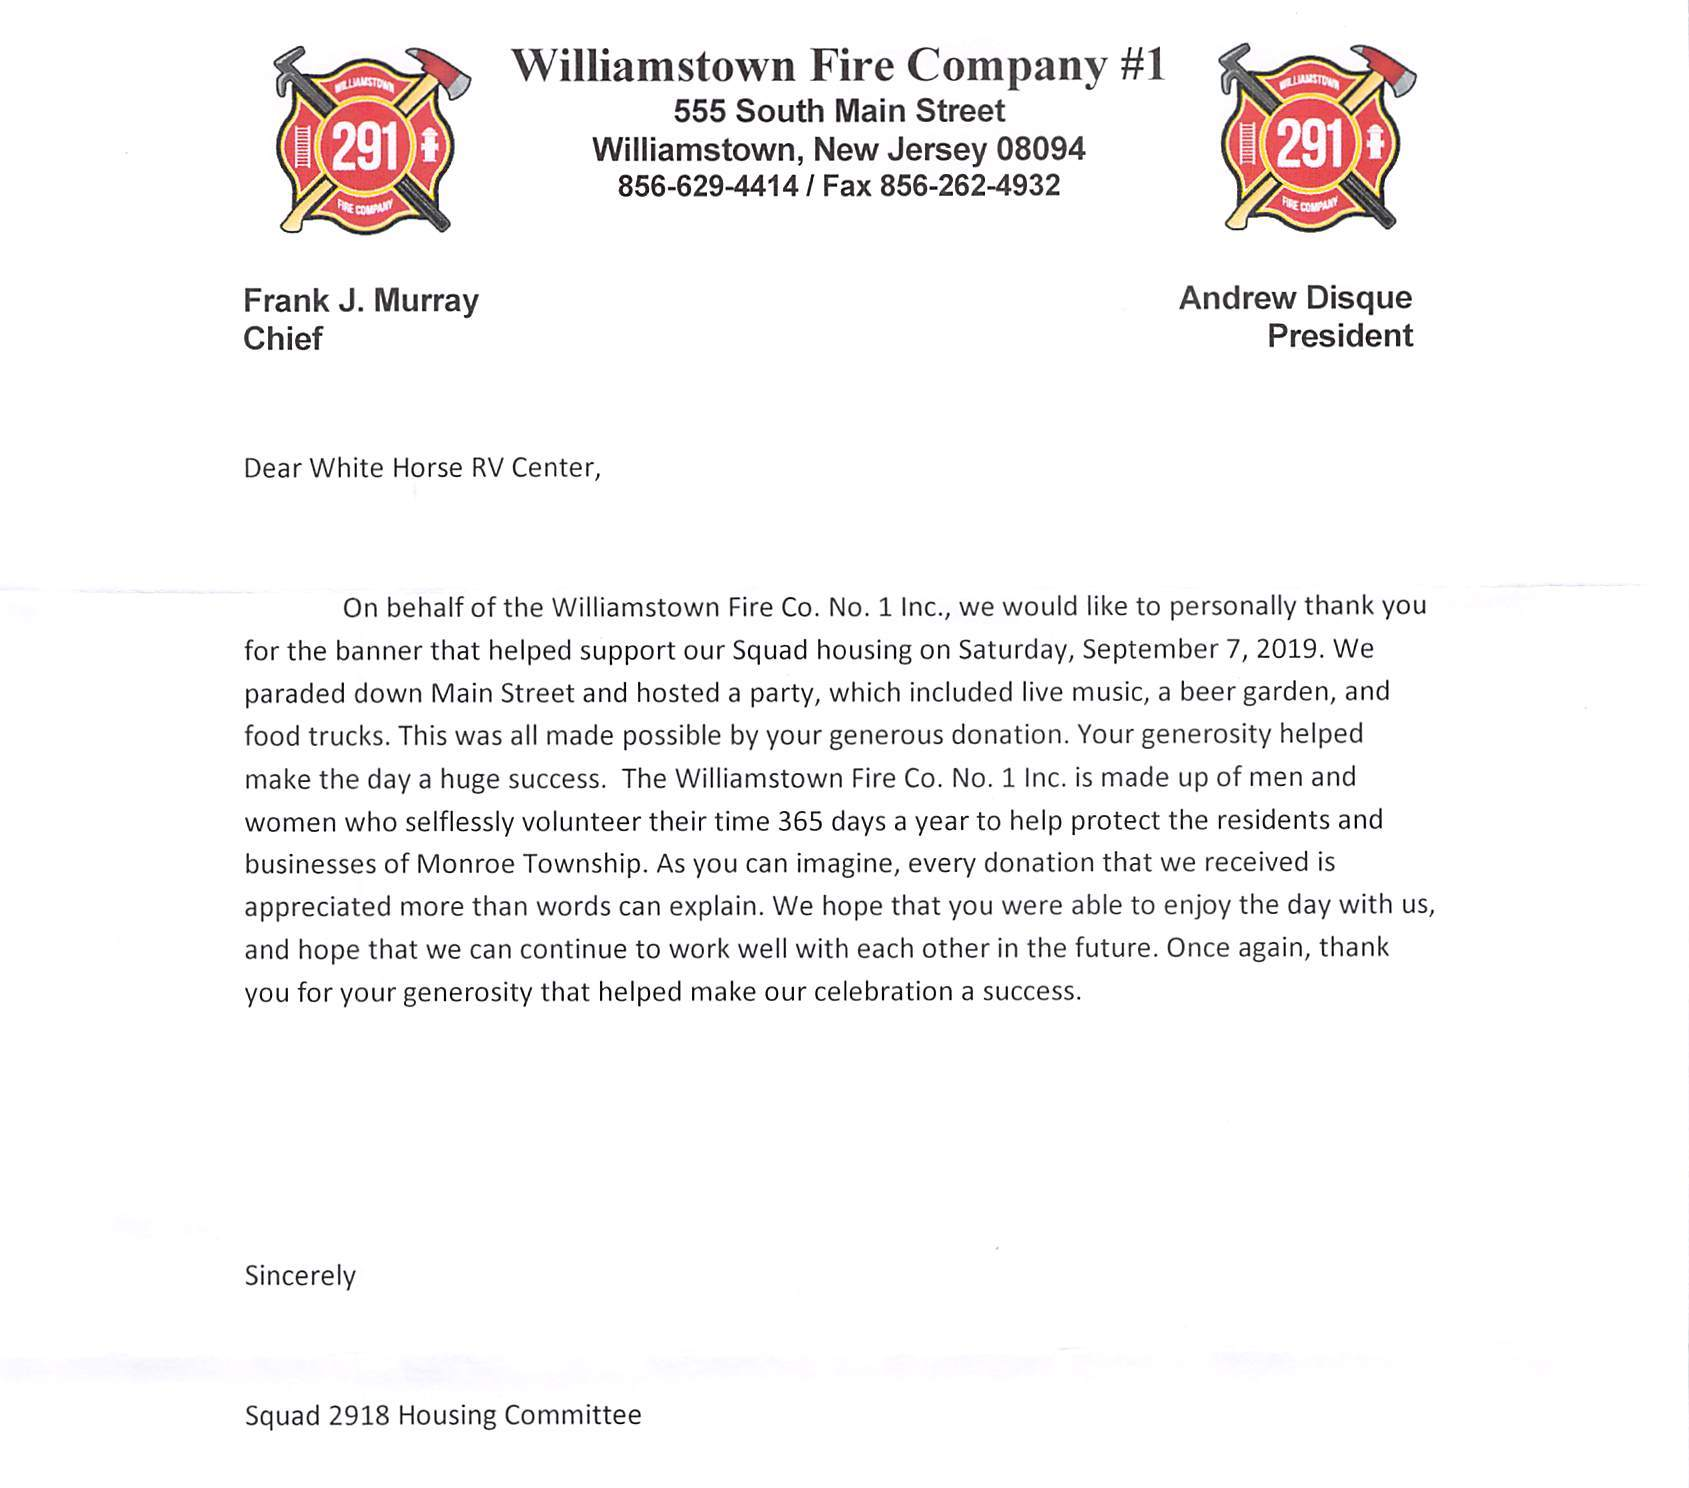 Williamstown Fire Company